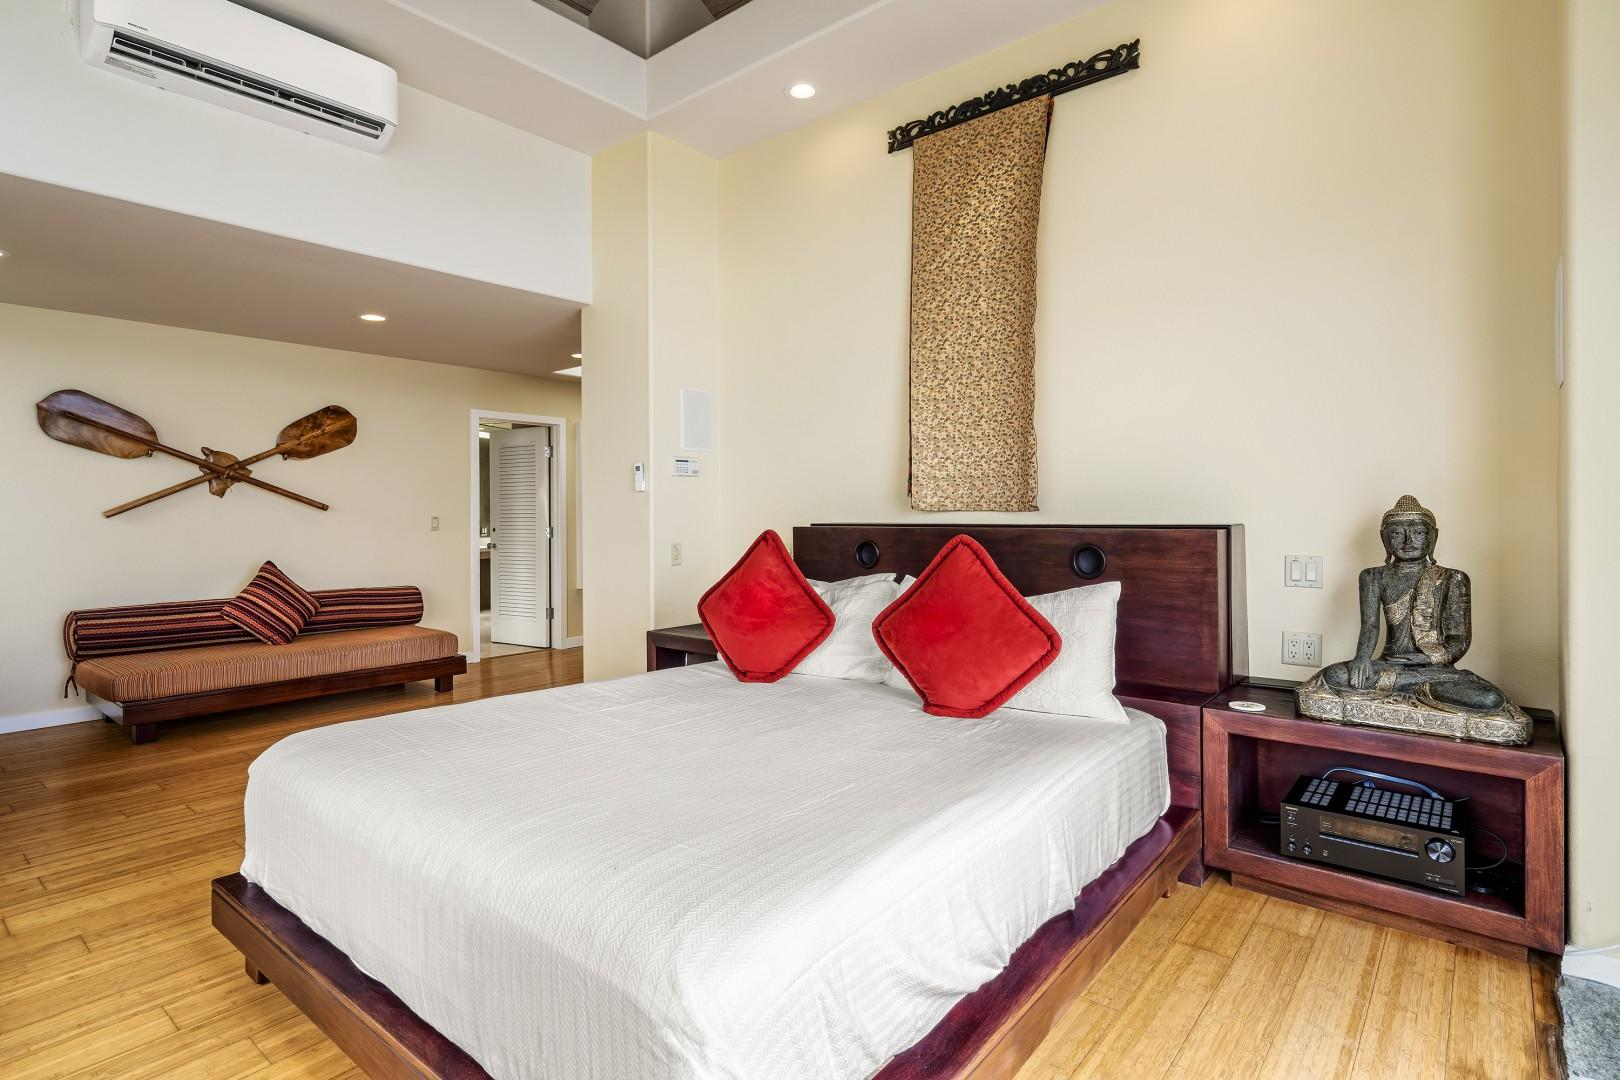 Equipped with King bedroom in the Master bedrooms